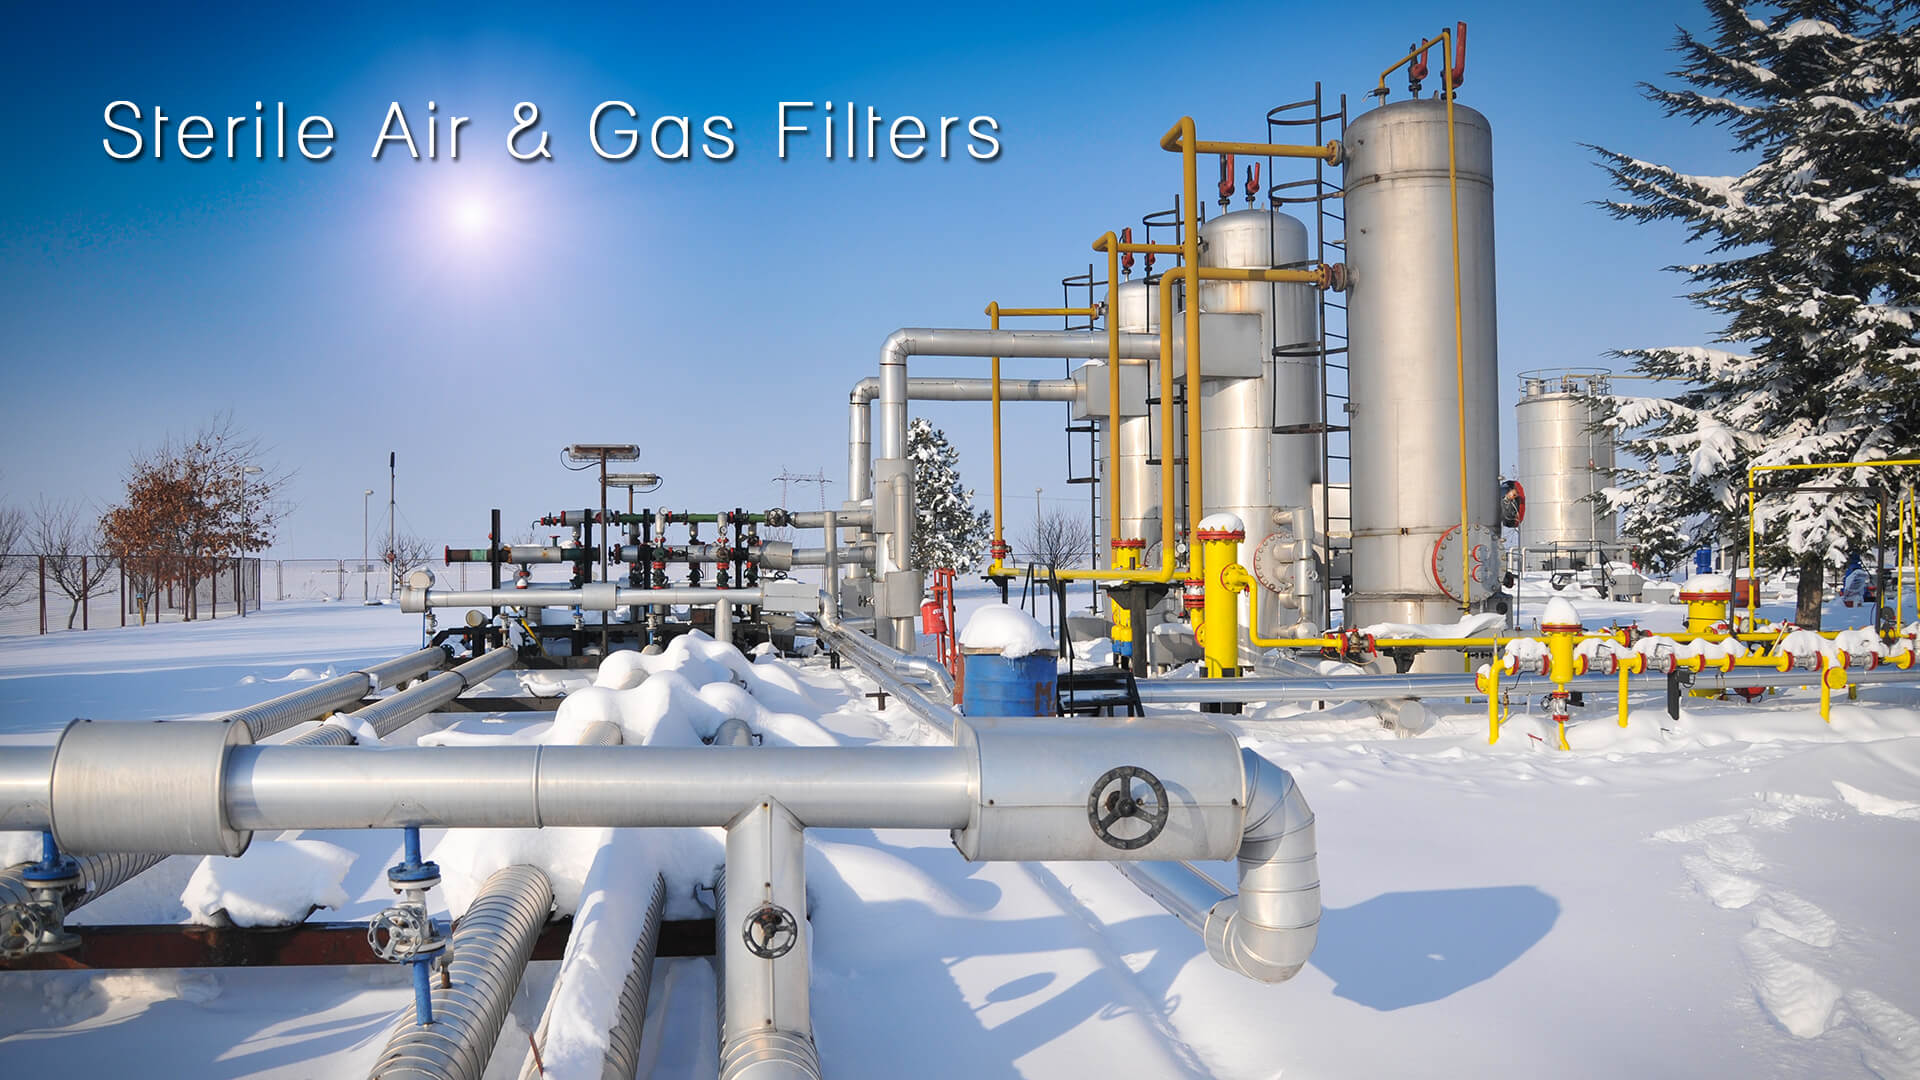 STERILE AIR AND GAS FILTERS